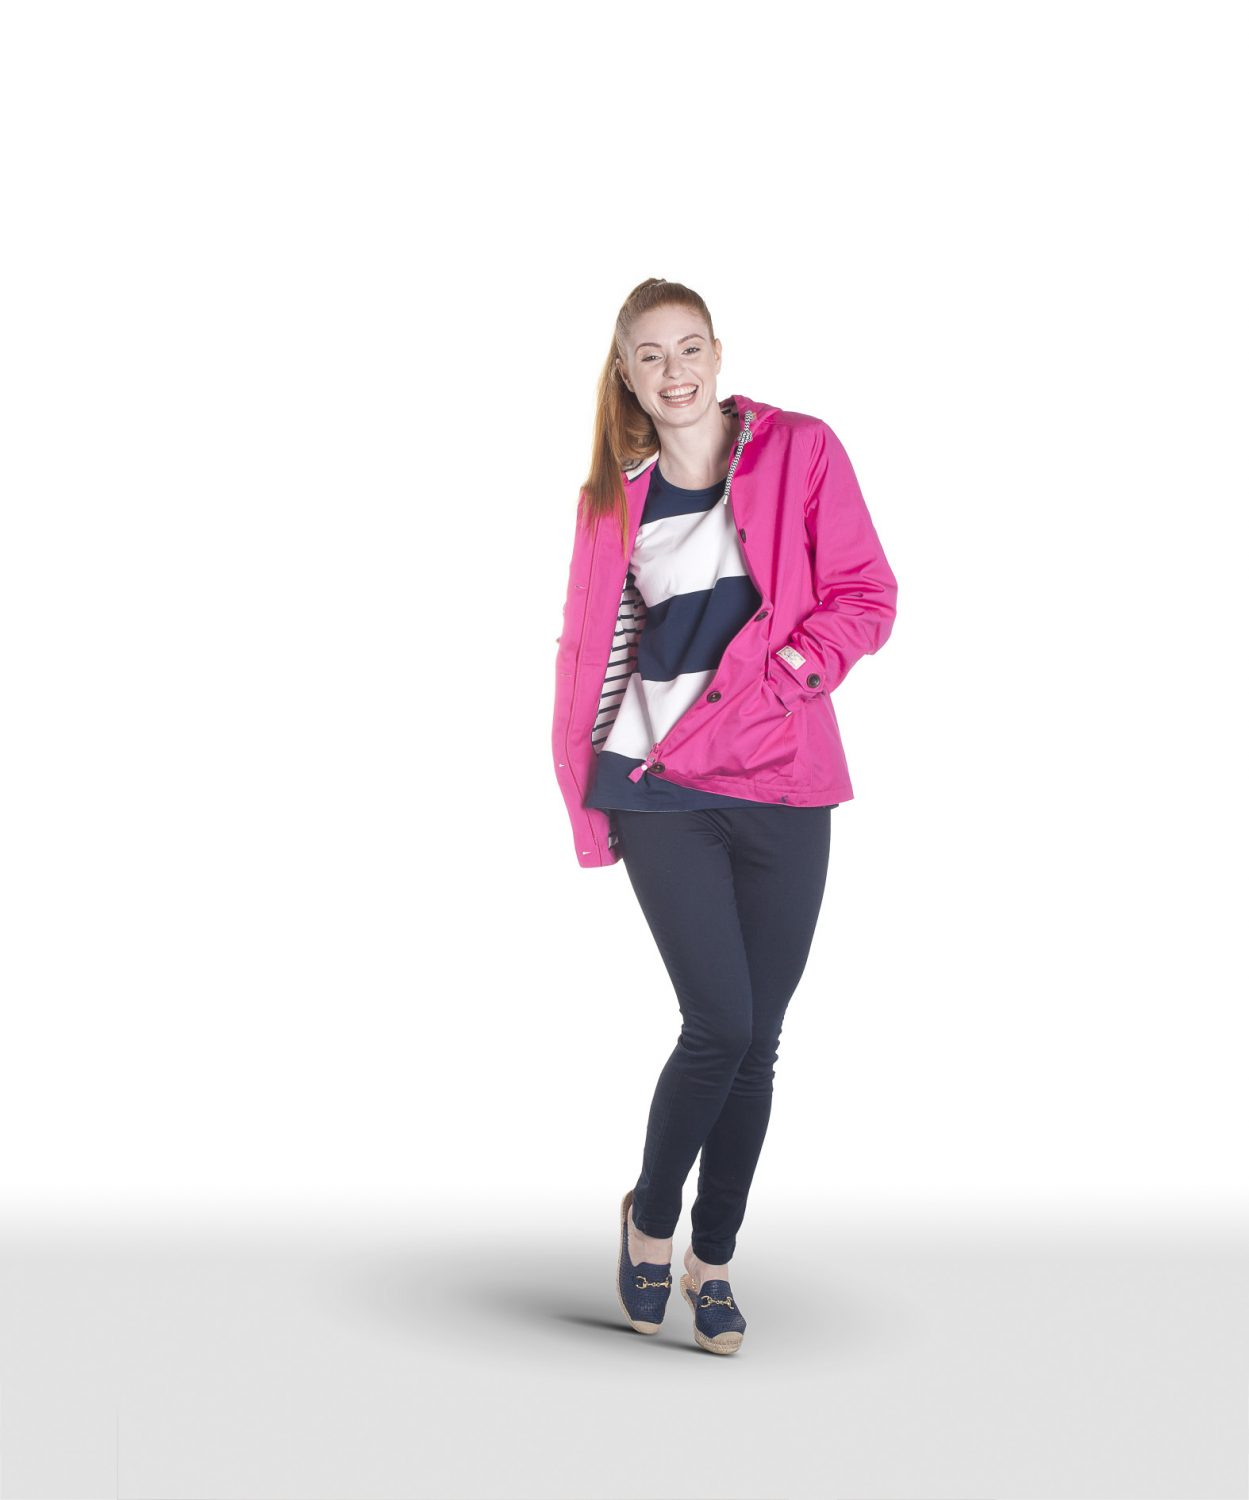 Joules pink jacket, £84.95, stripe sweatshirt, £54.95, Seasalt jeggings, £45, Charity Farm Countrystore, Cranbrook charityfarmcountrystore.co.uk 01580 713189; Kanna mules, £75, The Golden Boot, Maidstone thegoldenboot.co.uk 01622 752349